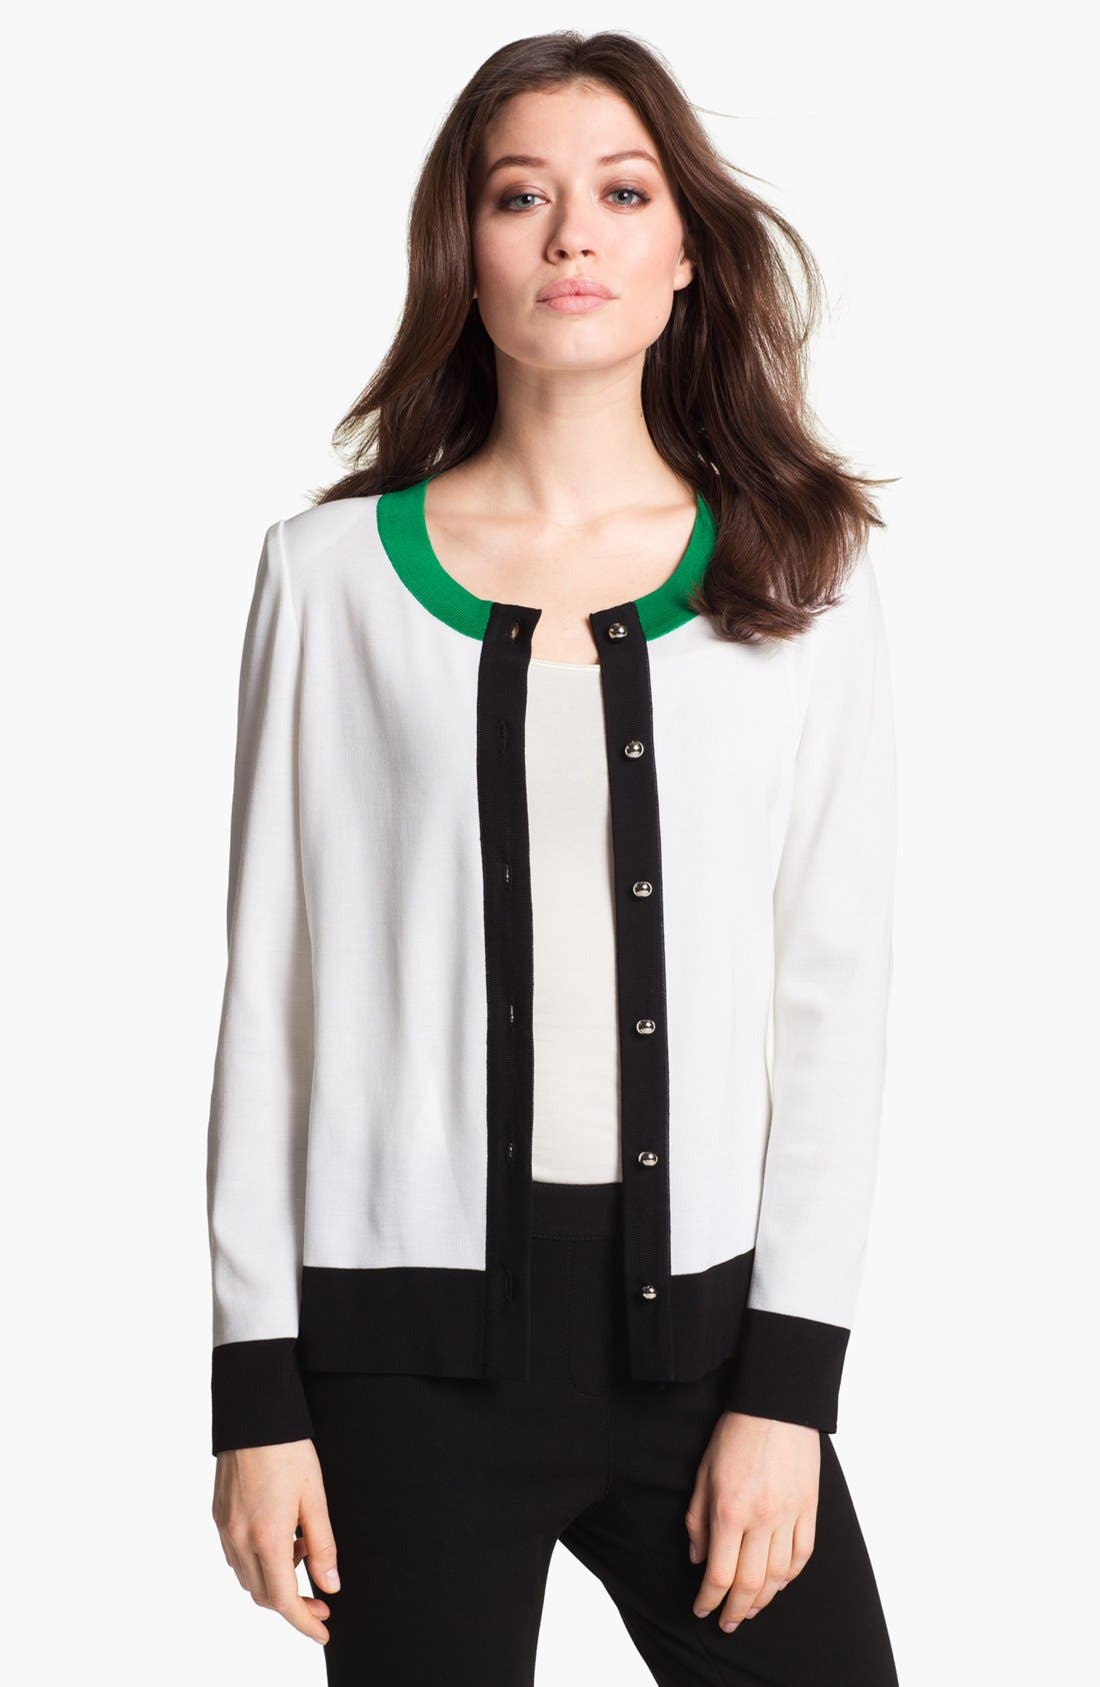 Alternate Image 1 Selected - Misook 'Jennifer' Cardigan (Petite) (Online Only)